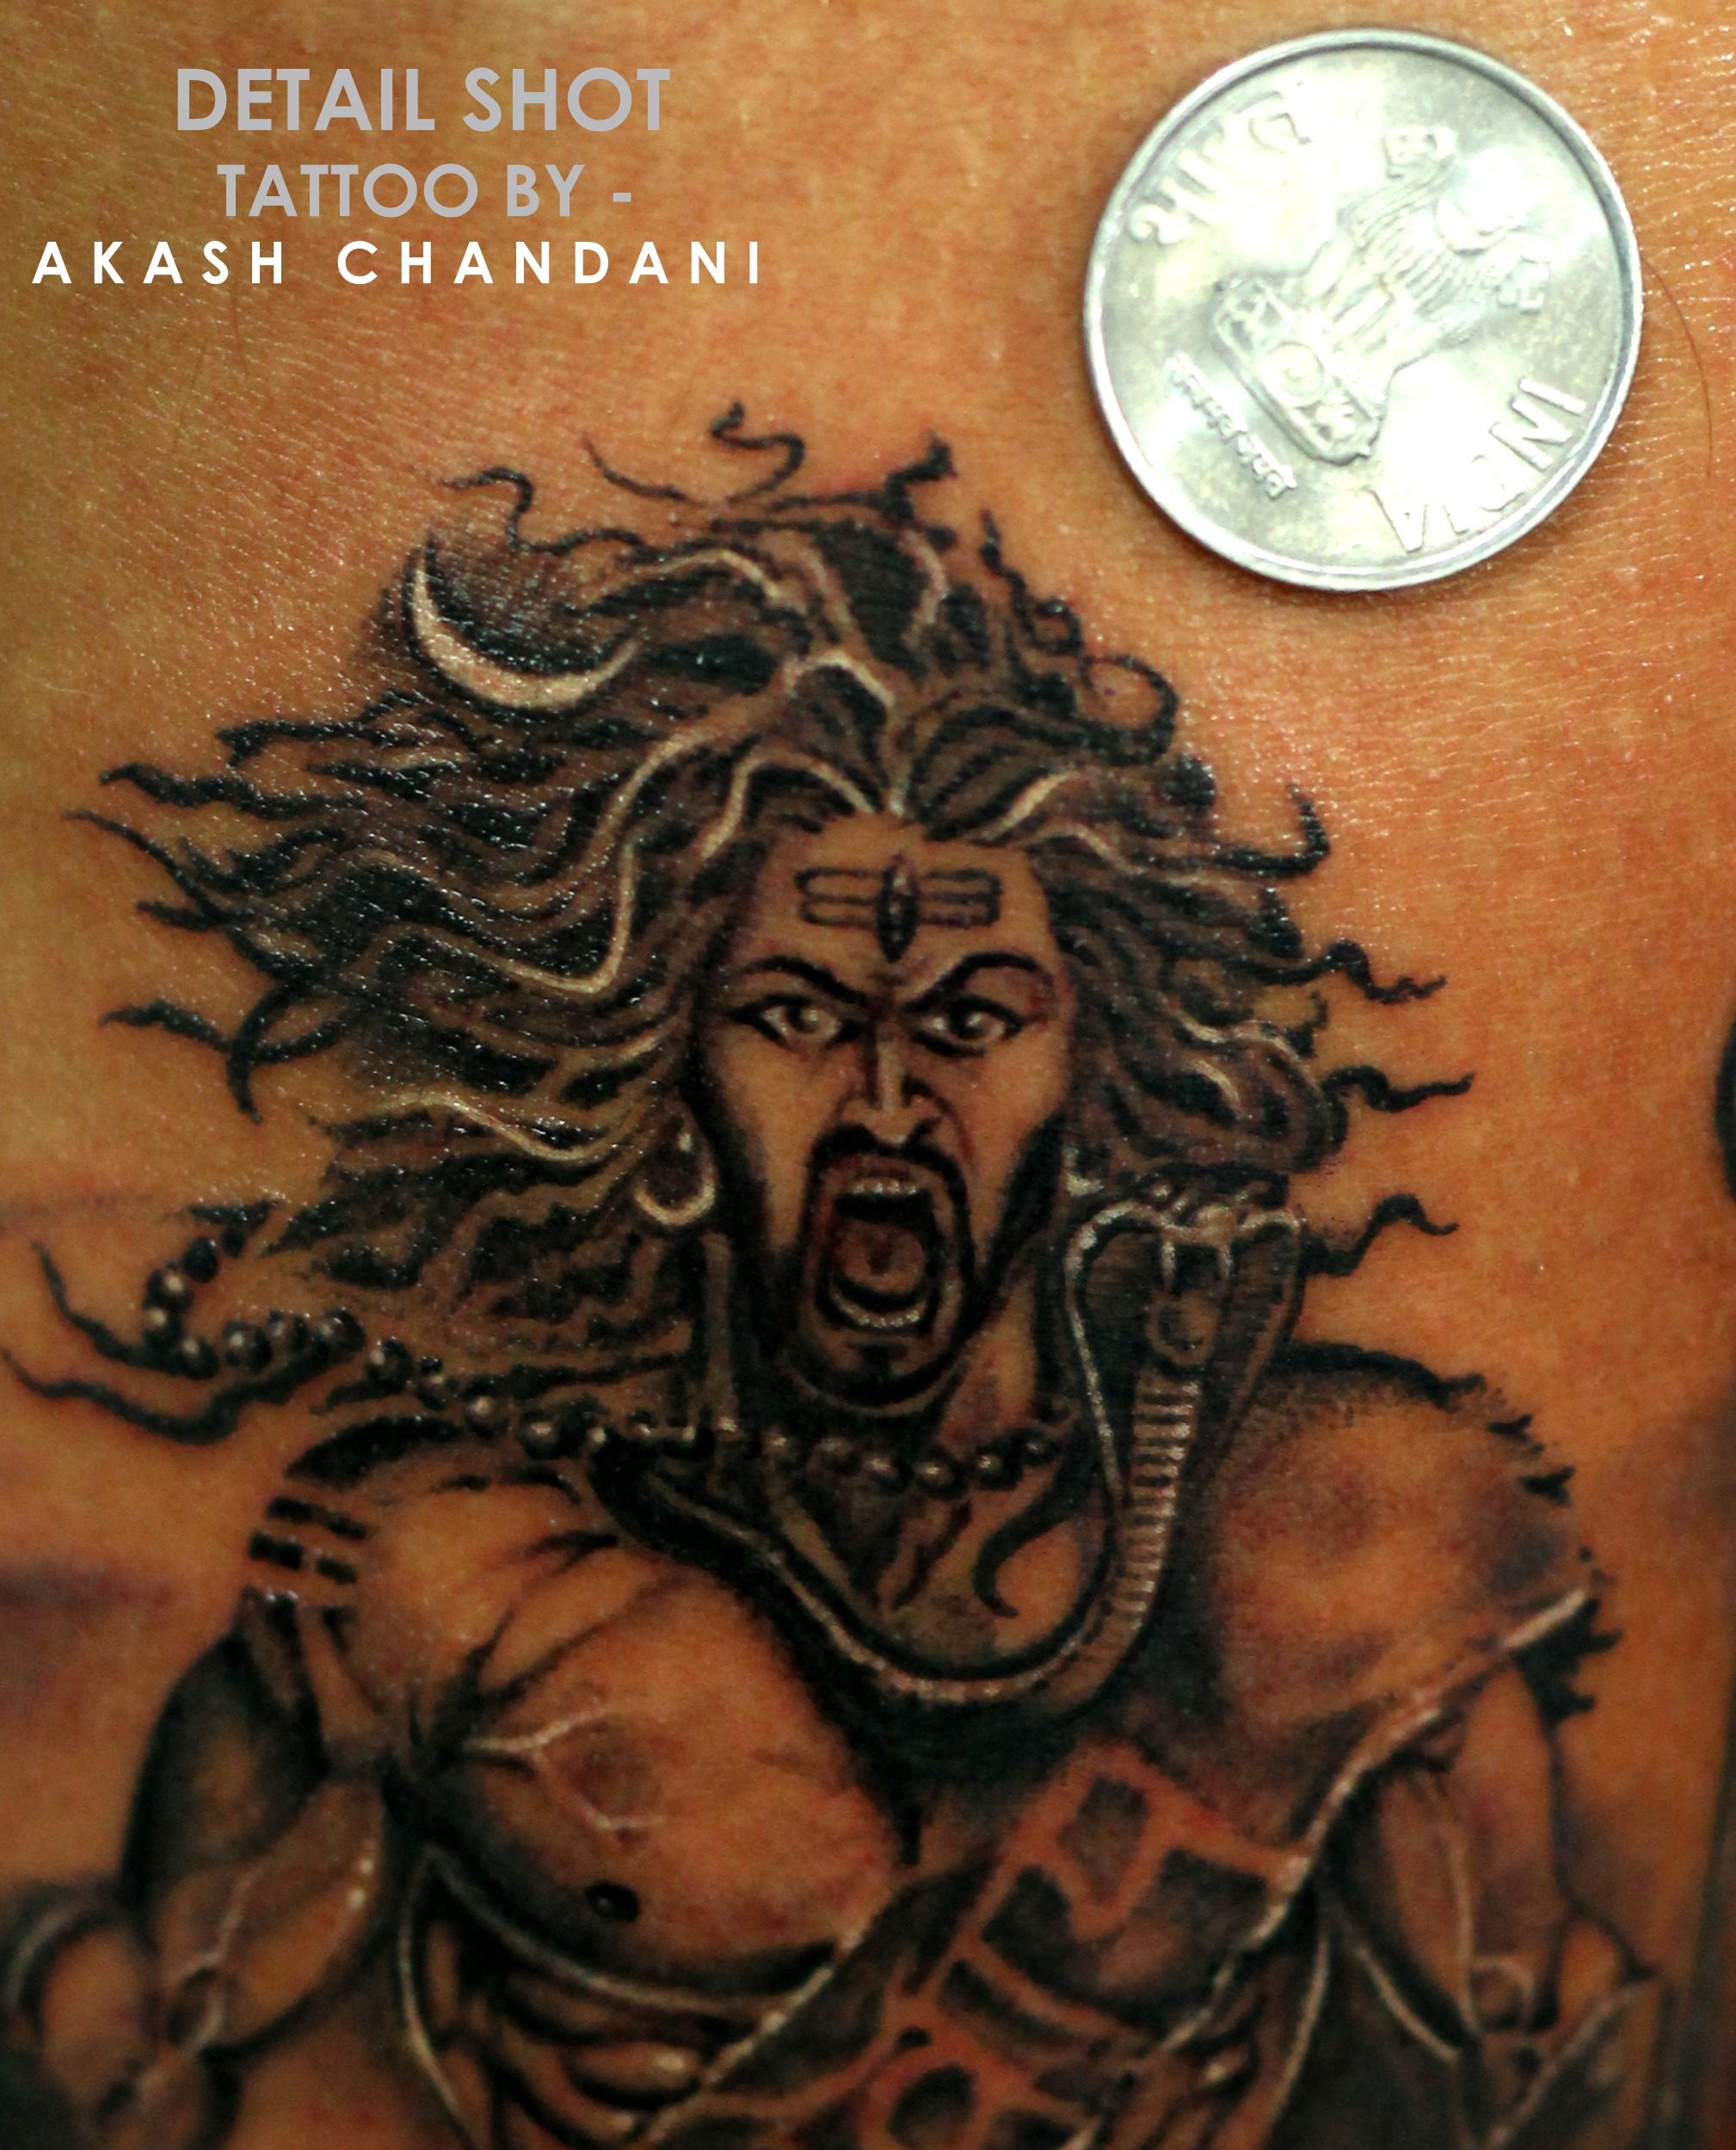 8f6001a8a Coin Size face detailing it was, Challenging Job. Shiva tattoo by Akash  Chandani Instagram - the_inkmann